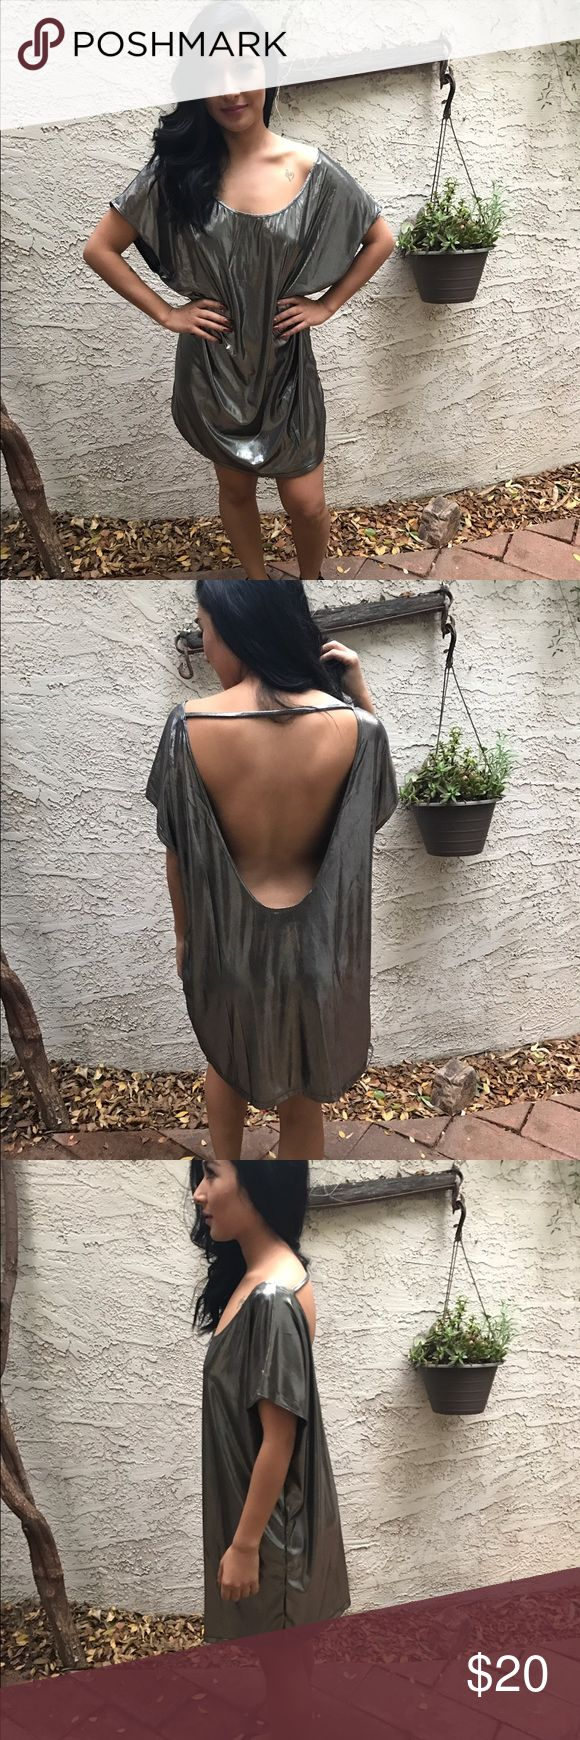 Metallic AA dress! NWOT, Perfect for NYE but also cute for any going out occasion! this dress is simple + sexy which is always a plus!! 💕 American Apparel Dresses